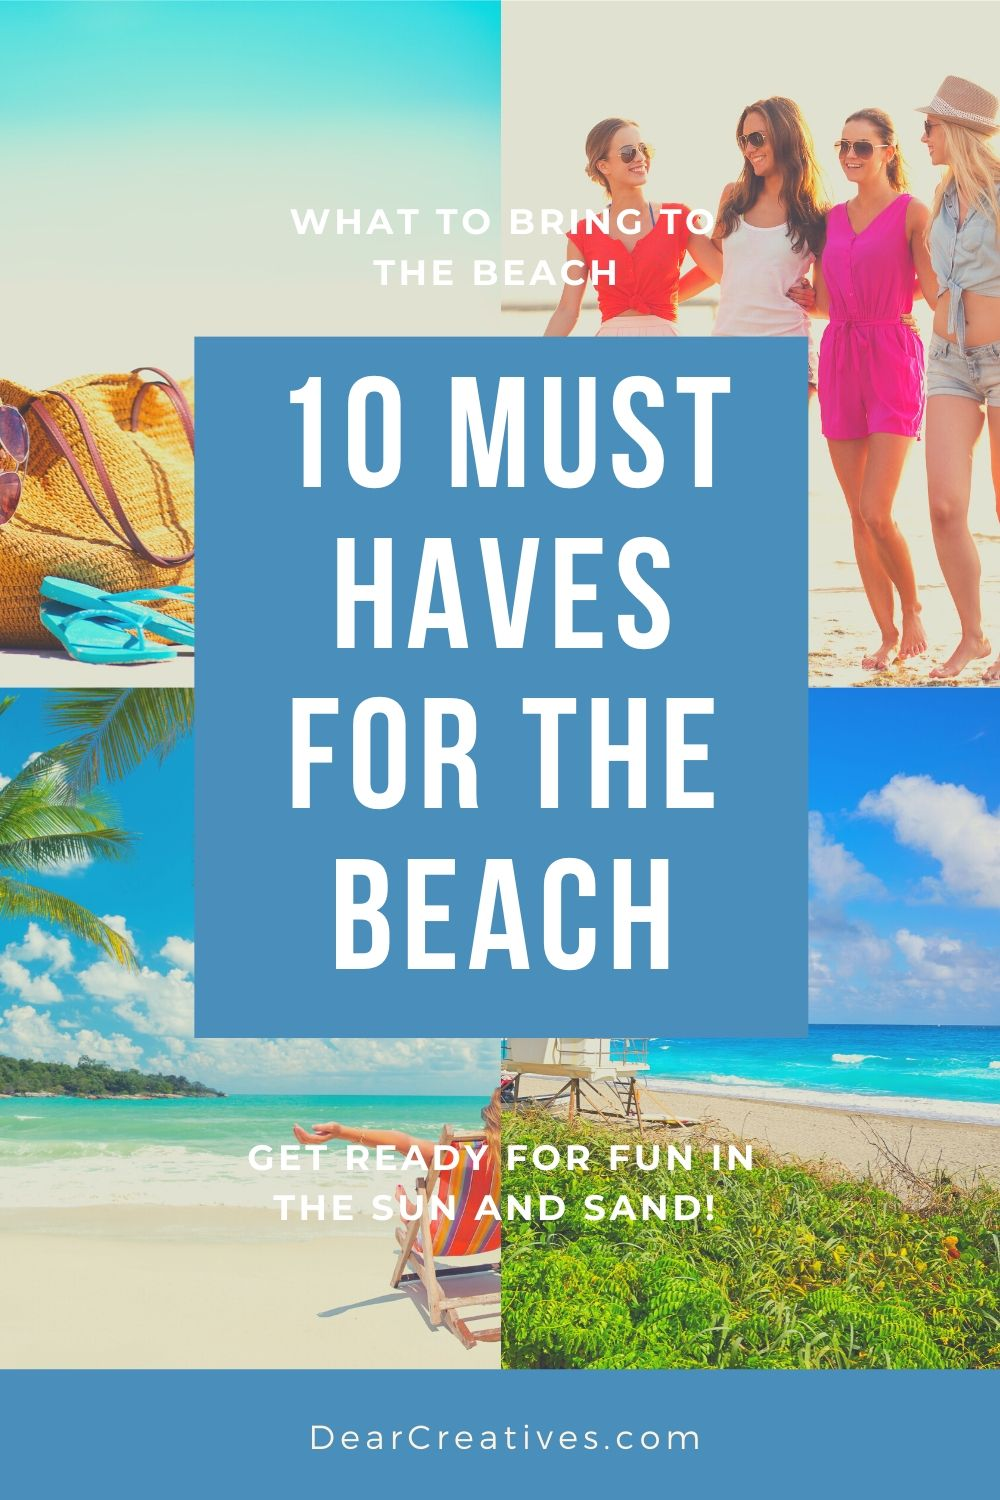 10 Must Haves For The Beach!